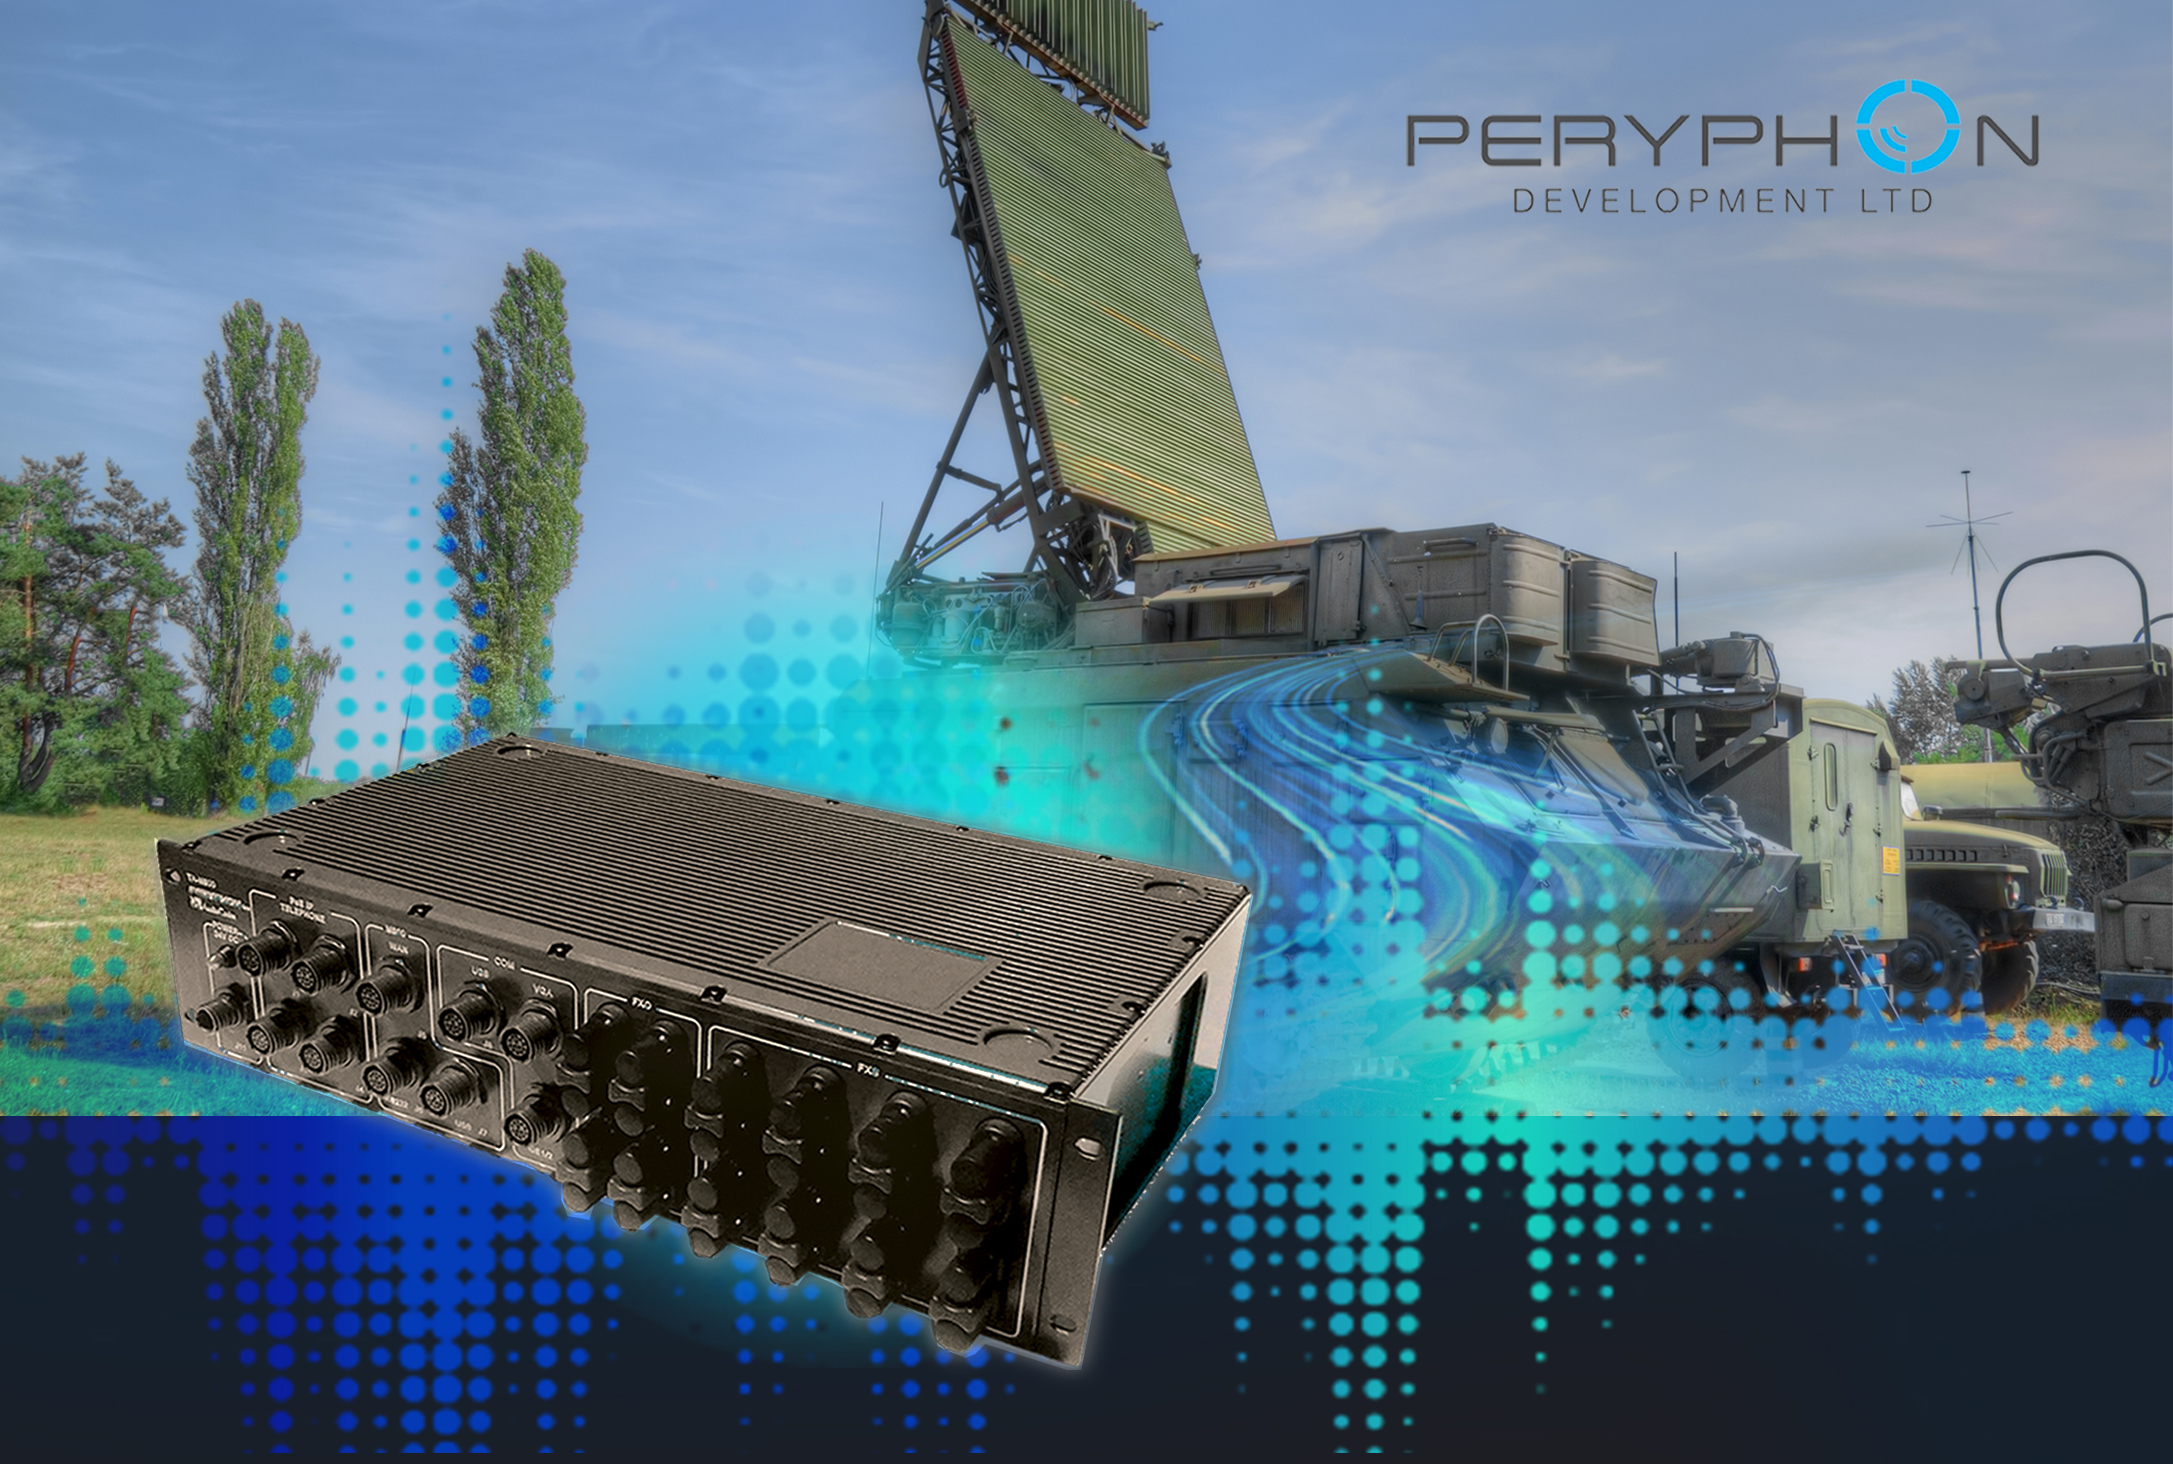 Peryphon Development has recently been awarded a contract to supply tactical communications device - military modems, rugged field phones, routers and military exchanges - to the Israeli Defense Forces (IDF).